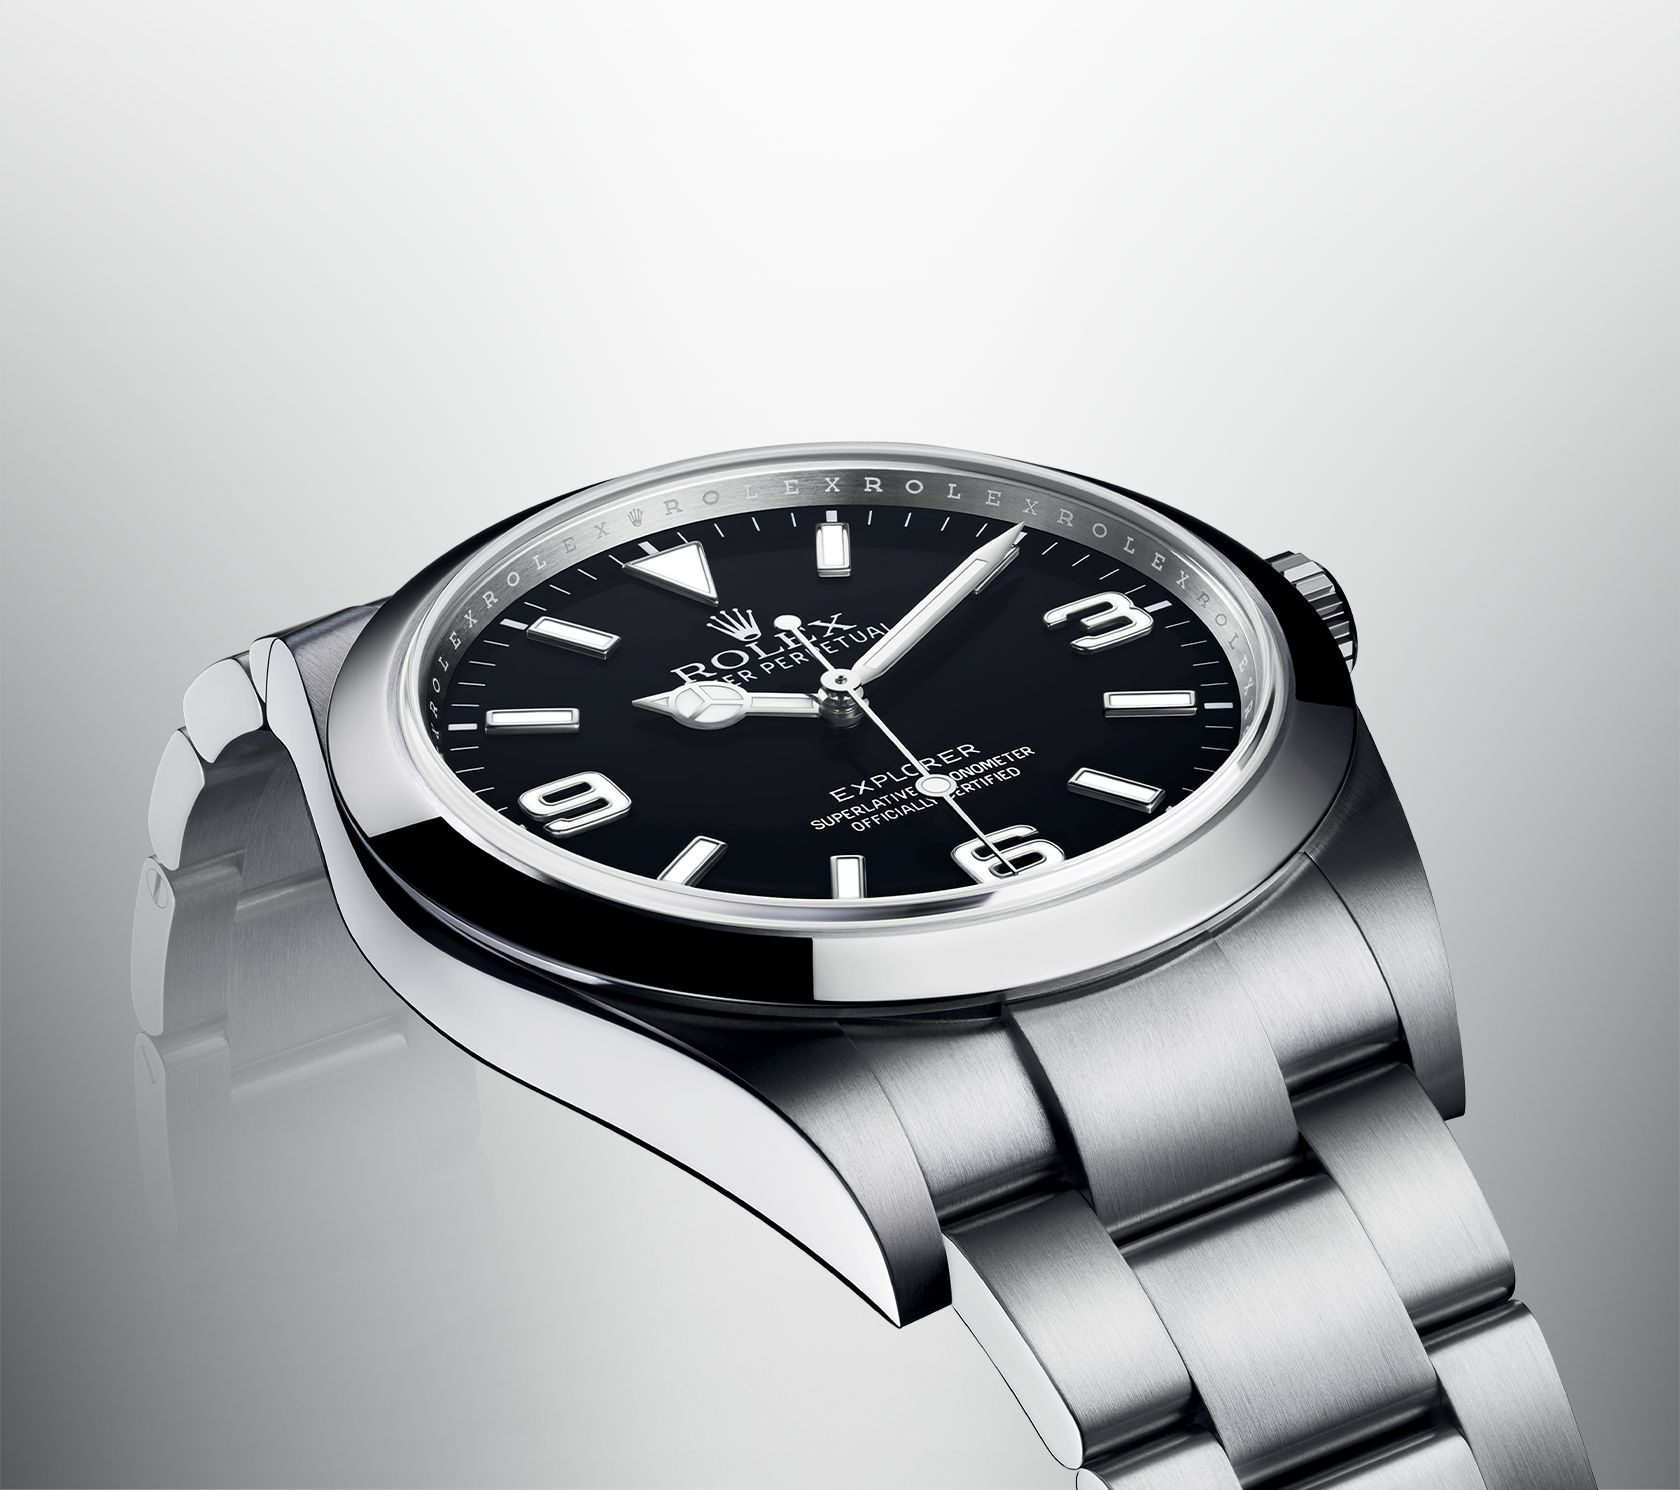 new-rolex-explorer-watch.jpg